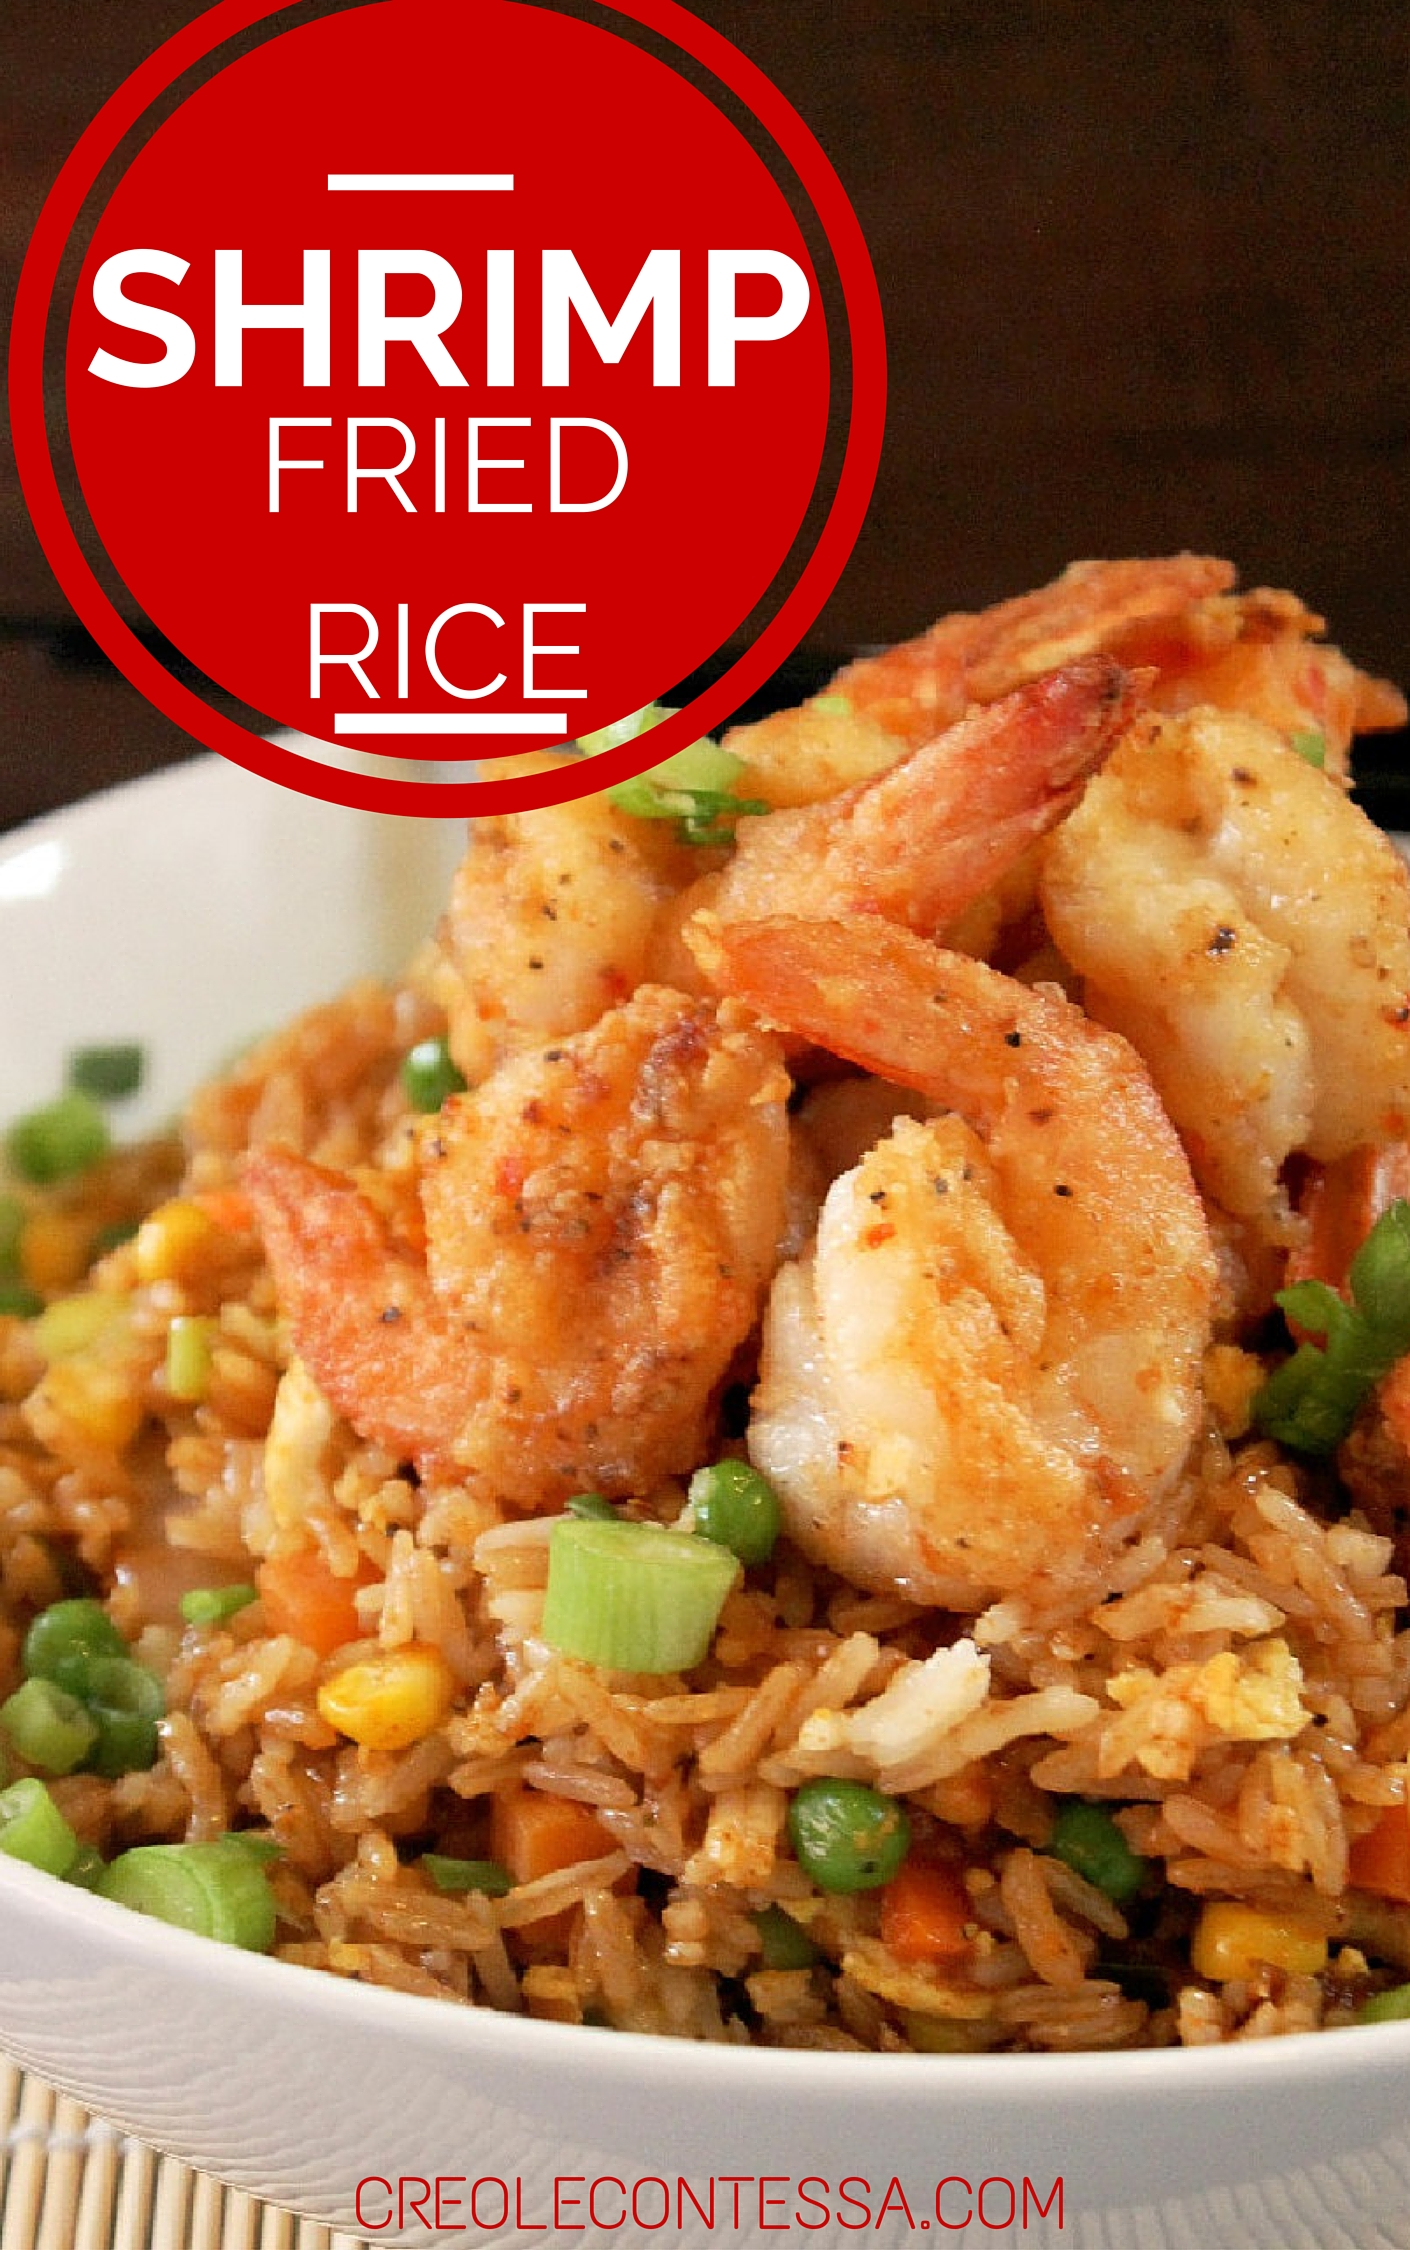 Did I mention my Shrimp Fried Rice actually has FRIED SHRIMP!